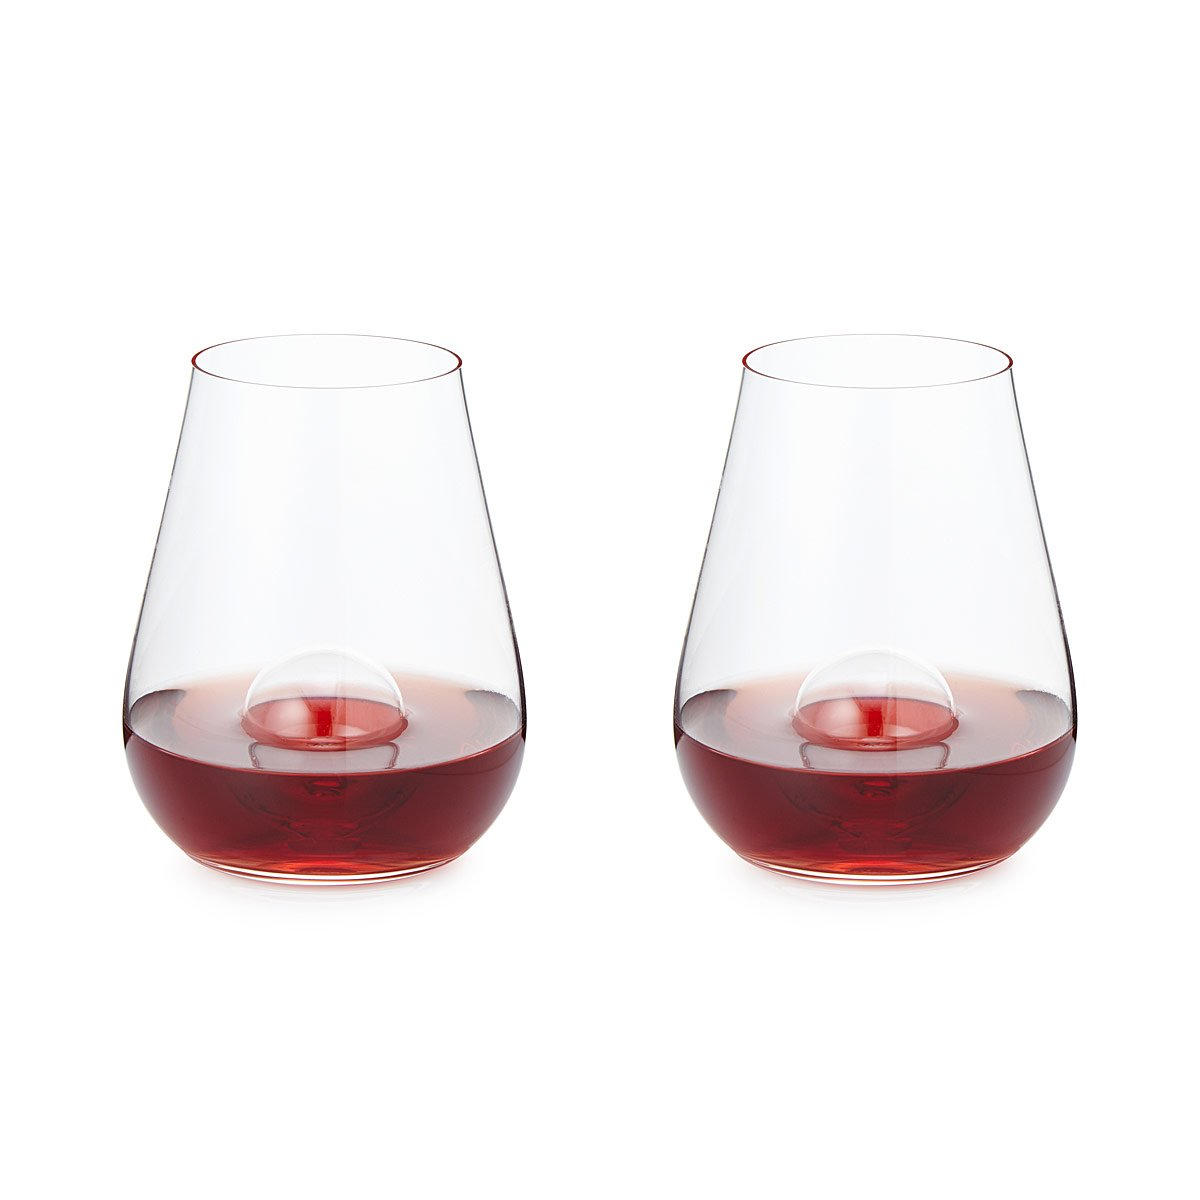 7 Deadly Sins Wine Glasses Crystal Aerating Stemless Wine Glass Set Glass Blowing Blown